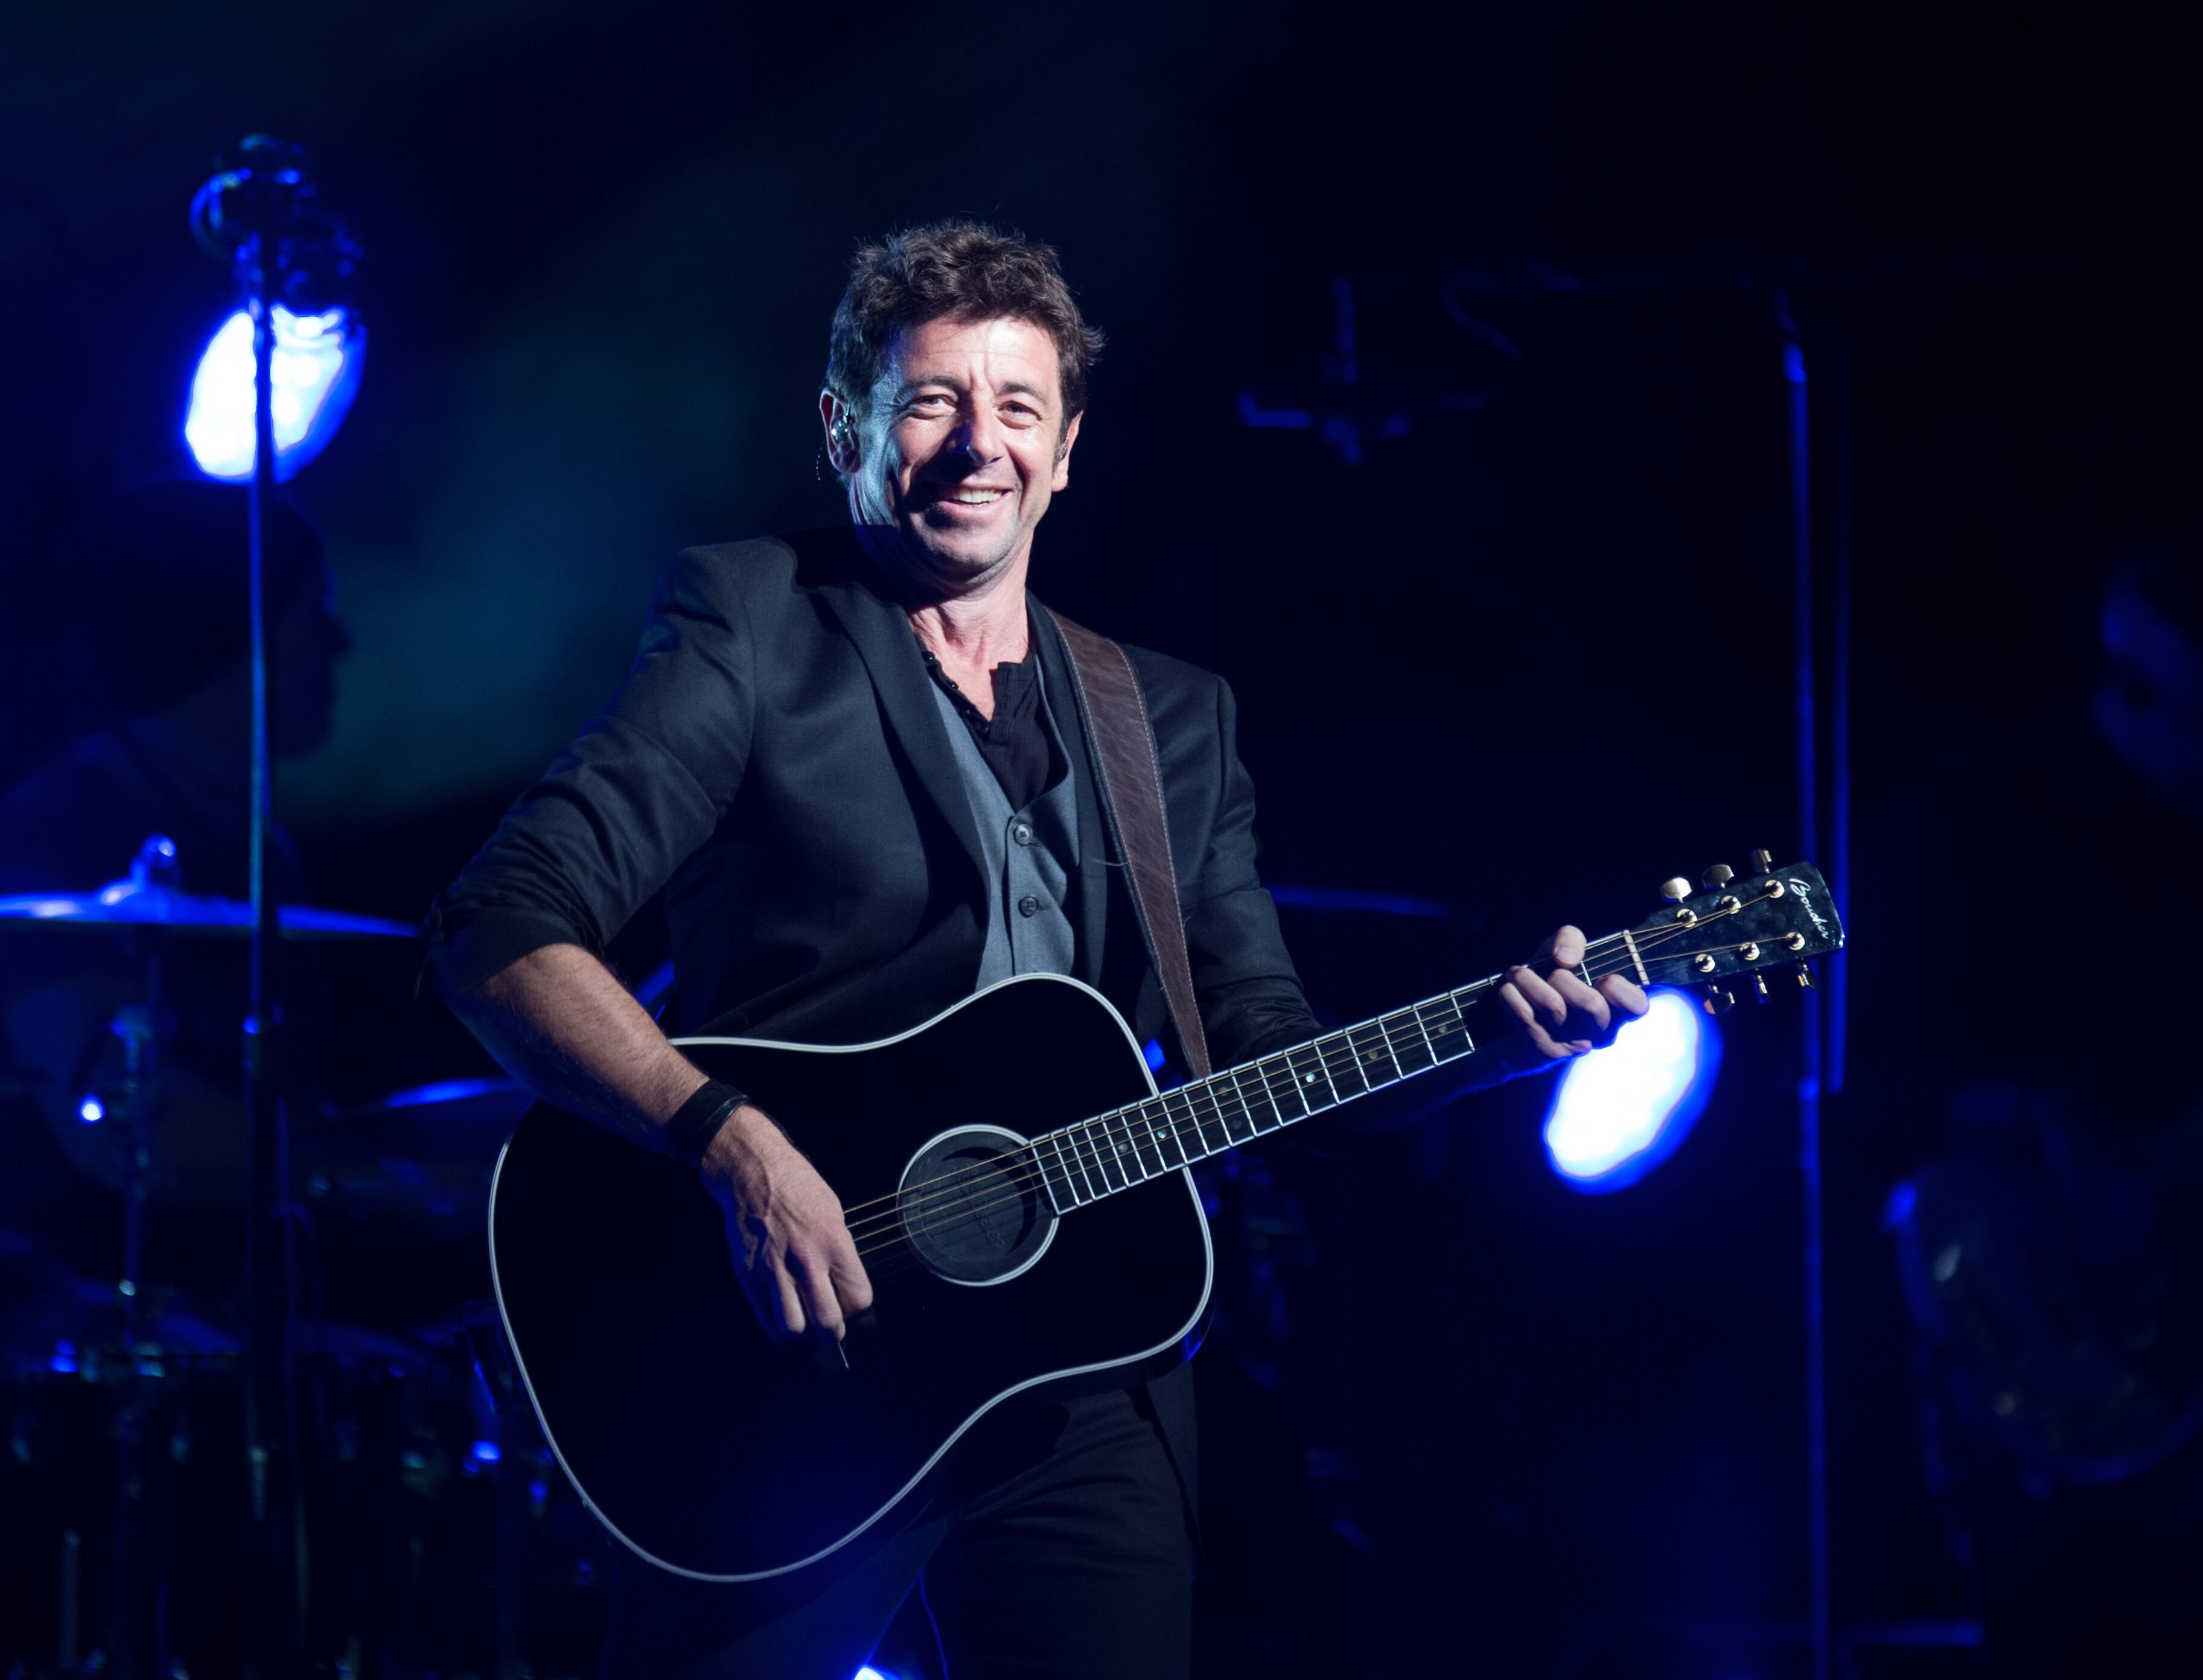 Le chanteur Patrick Bruel en concert. l Source : Getty Images